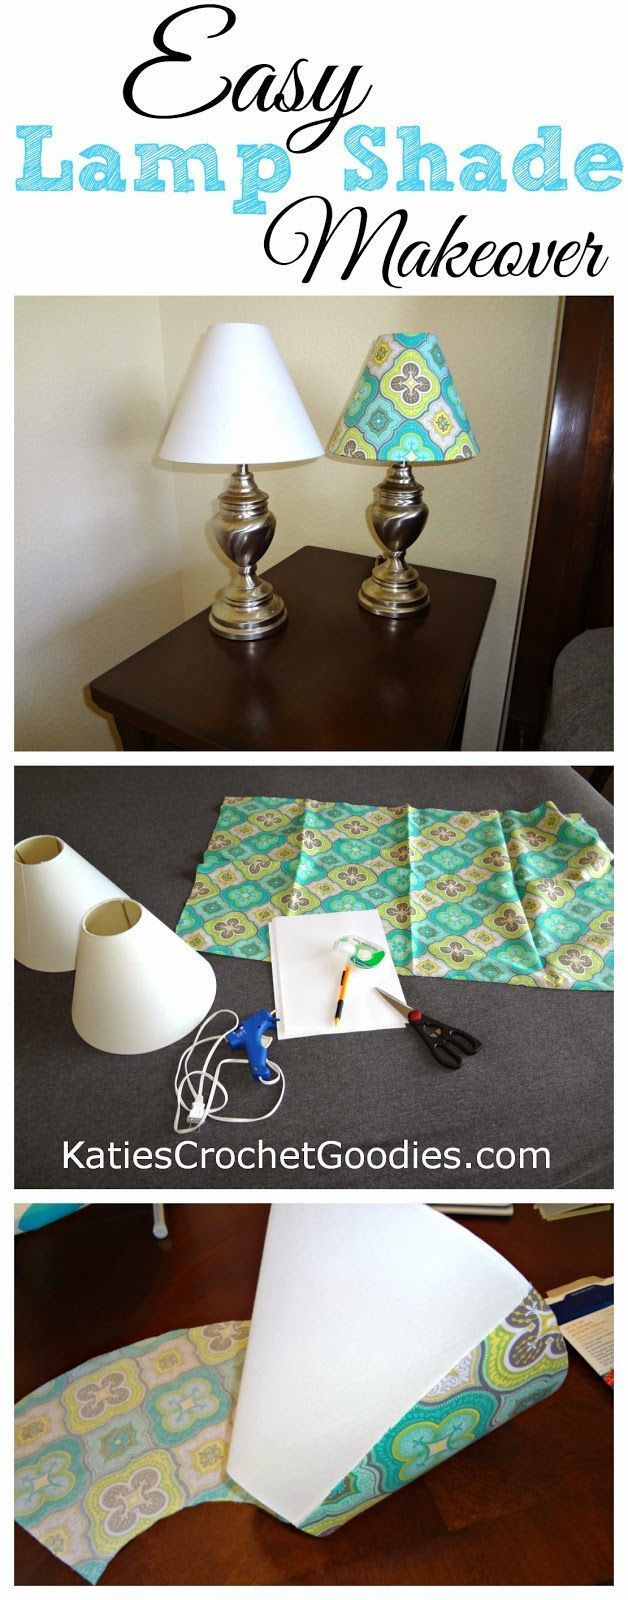 DIY: Recovering Lamp Shades TUTORIAL  tips #diy #lampshade #homedecor